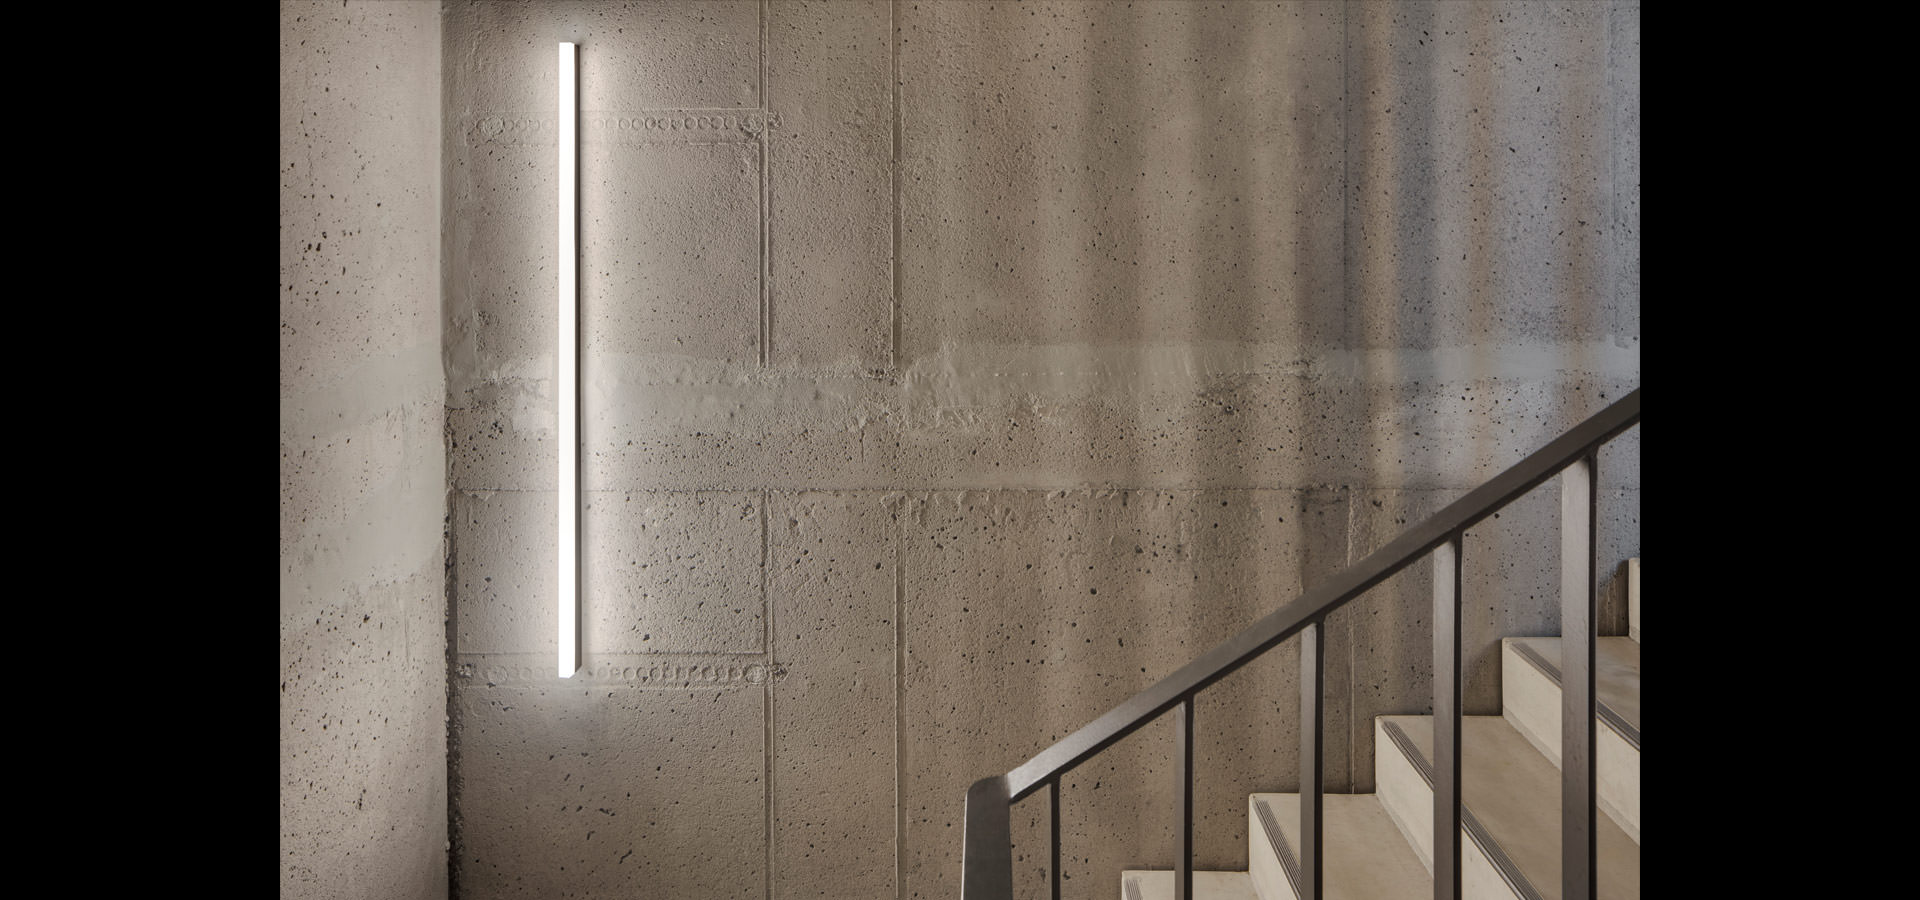 Architectural lighting purism LED lighting from Luxsystem Hamburg with black sl 20.3 led luminaires